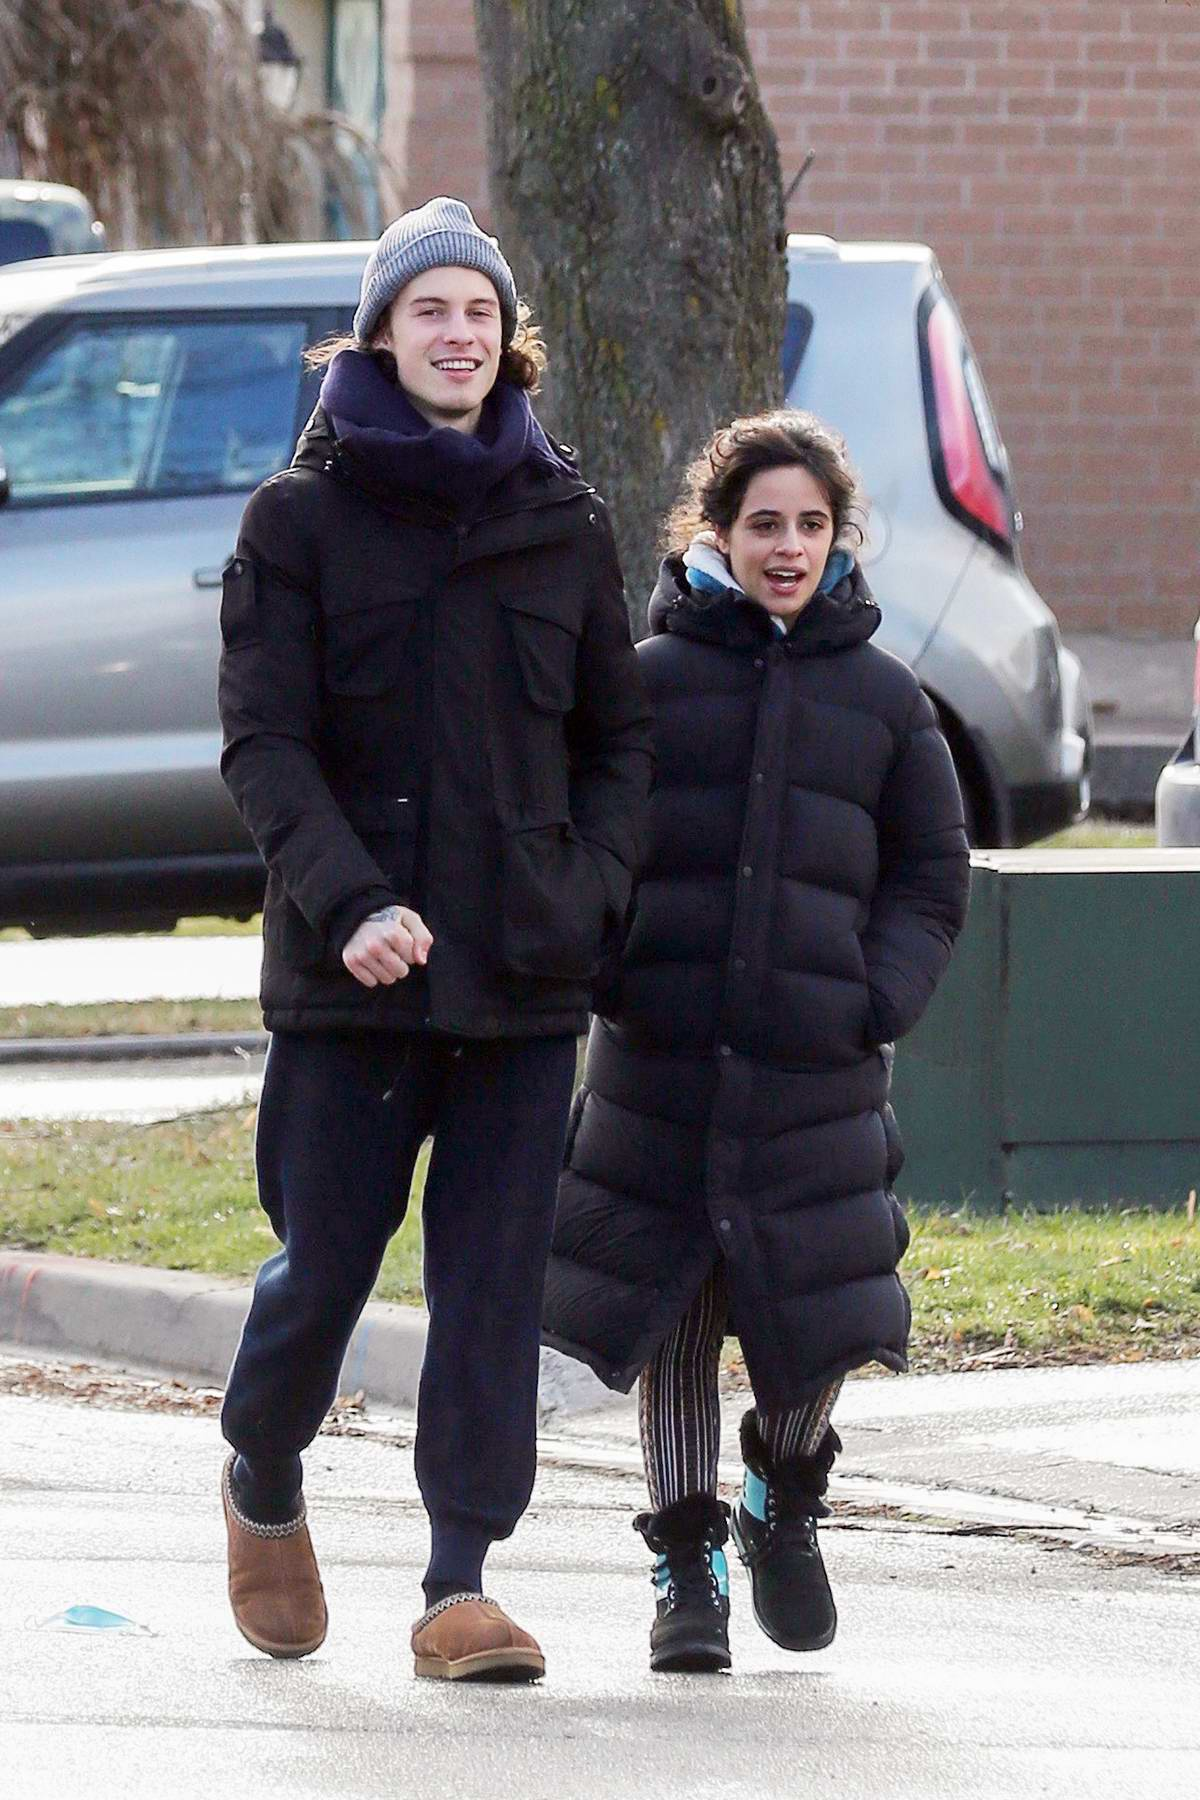 Camila Cabello and Shawn Mendes enjoy a walk in Shawn's hometown of Pickering, Canada